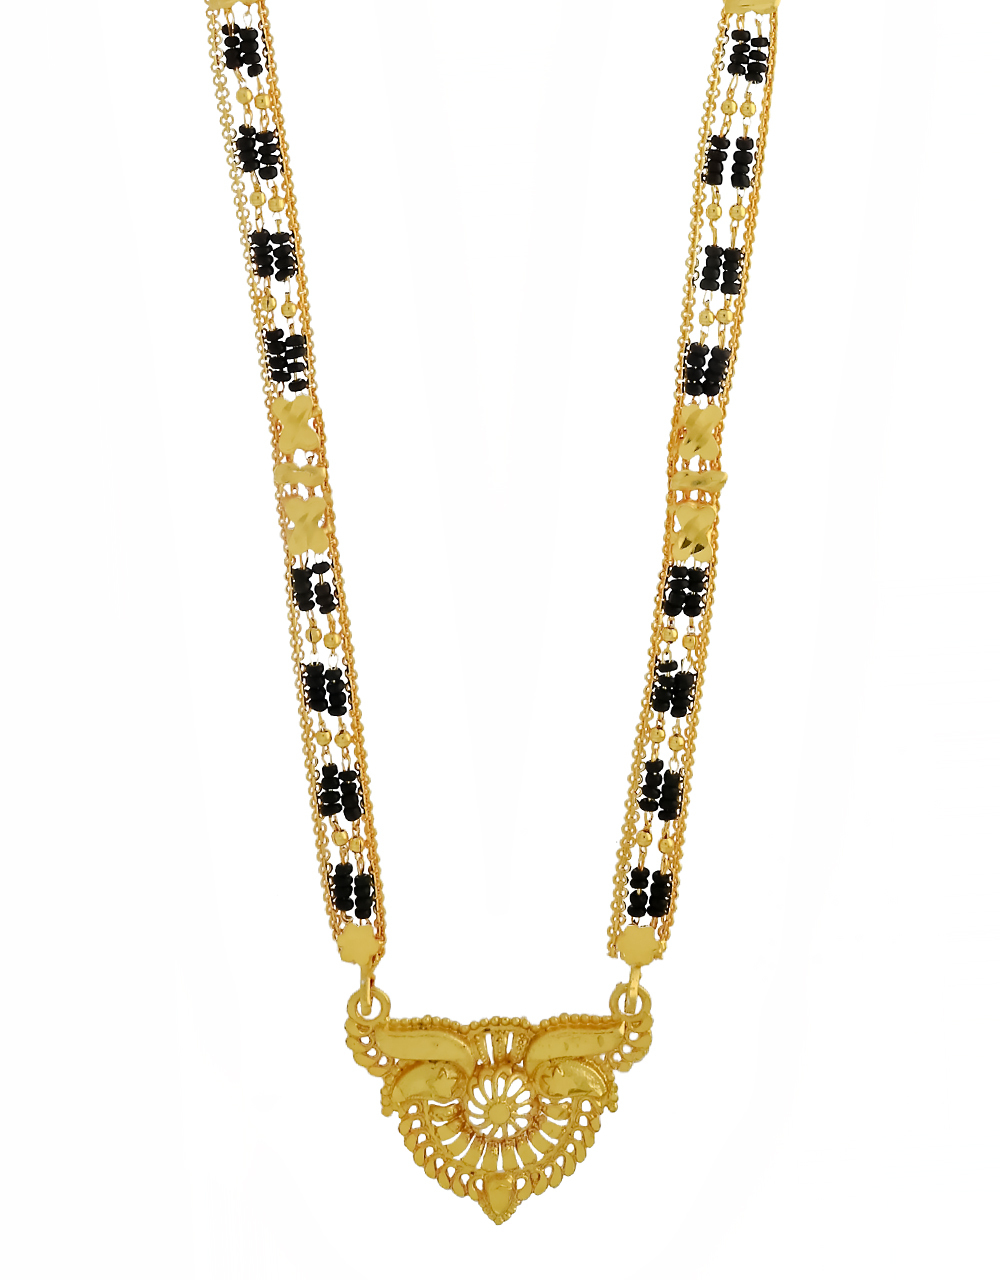 Dazzling Gold Finish Adorable Long Mangalsutra Design for Women